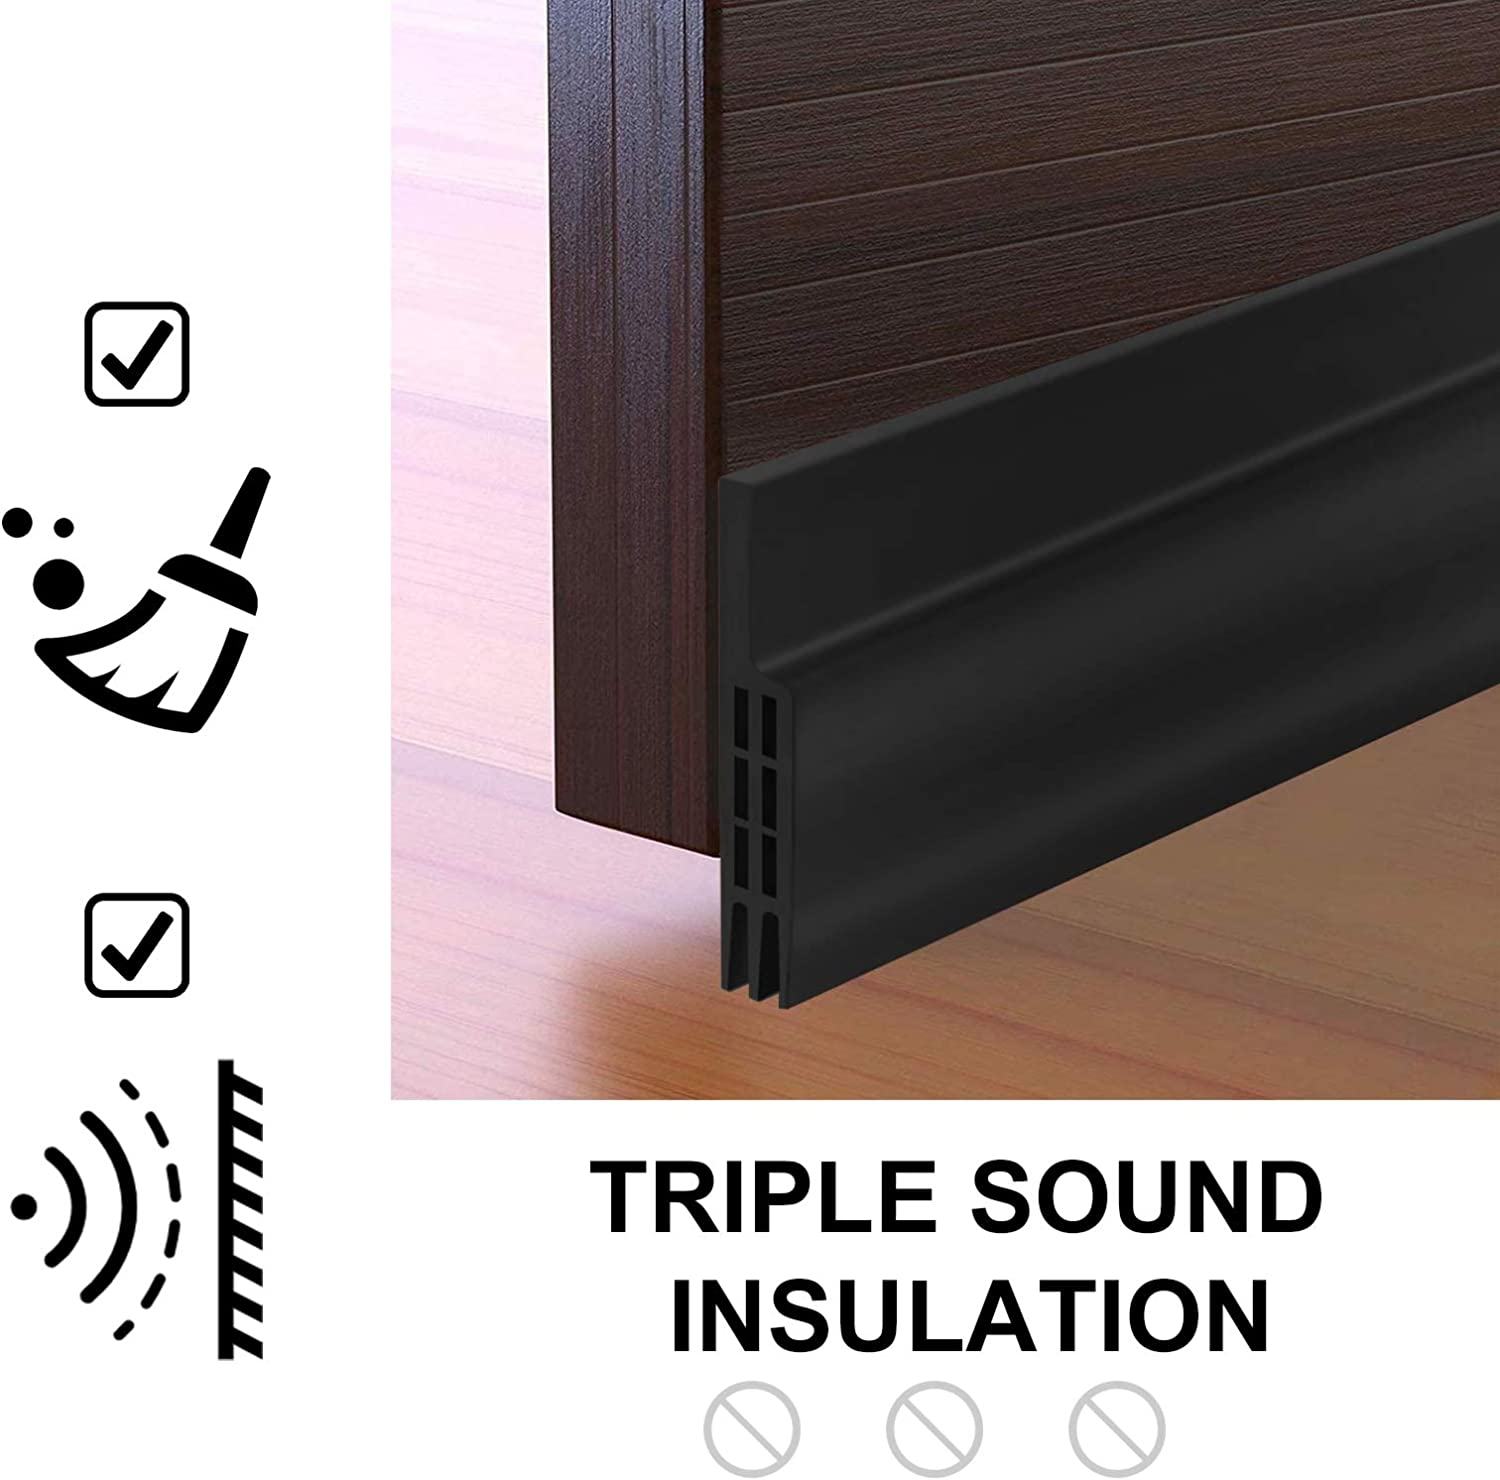 33Ft Long Insulation Weatherproof Doors and Windows Soundproofing Seal Strip with Adhesion Promoter Collision Avoidance Rubber Self-Adhesive Weatherstrip 2 Pack White 2PCS